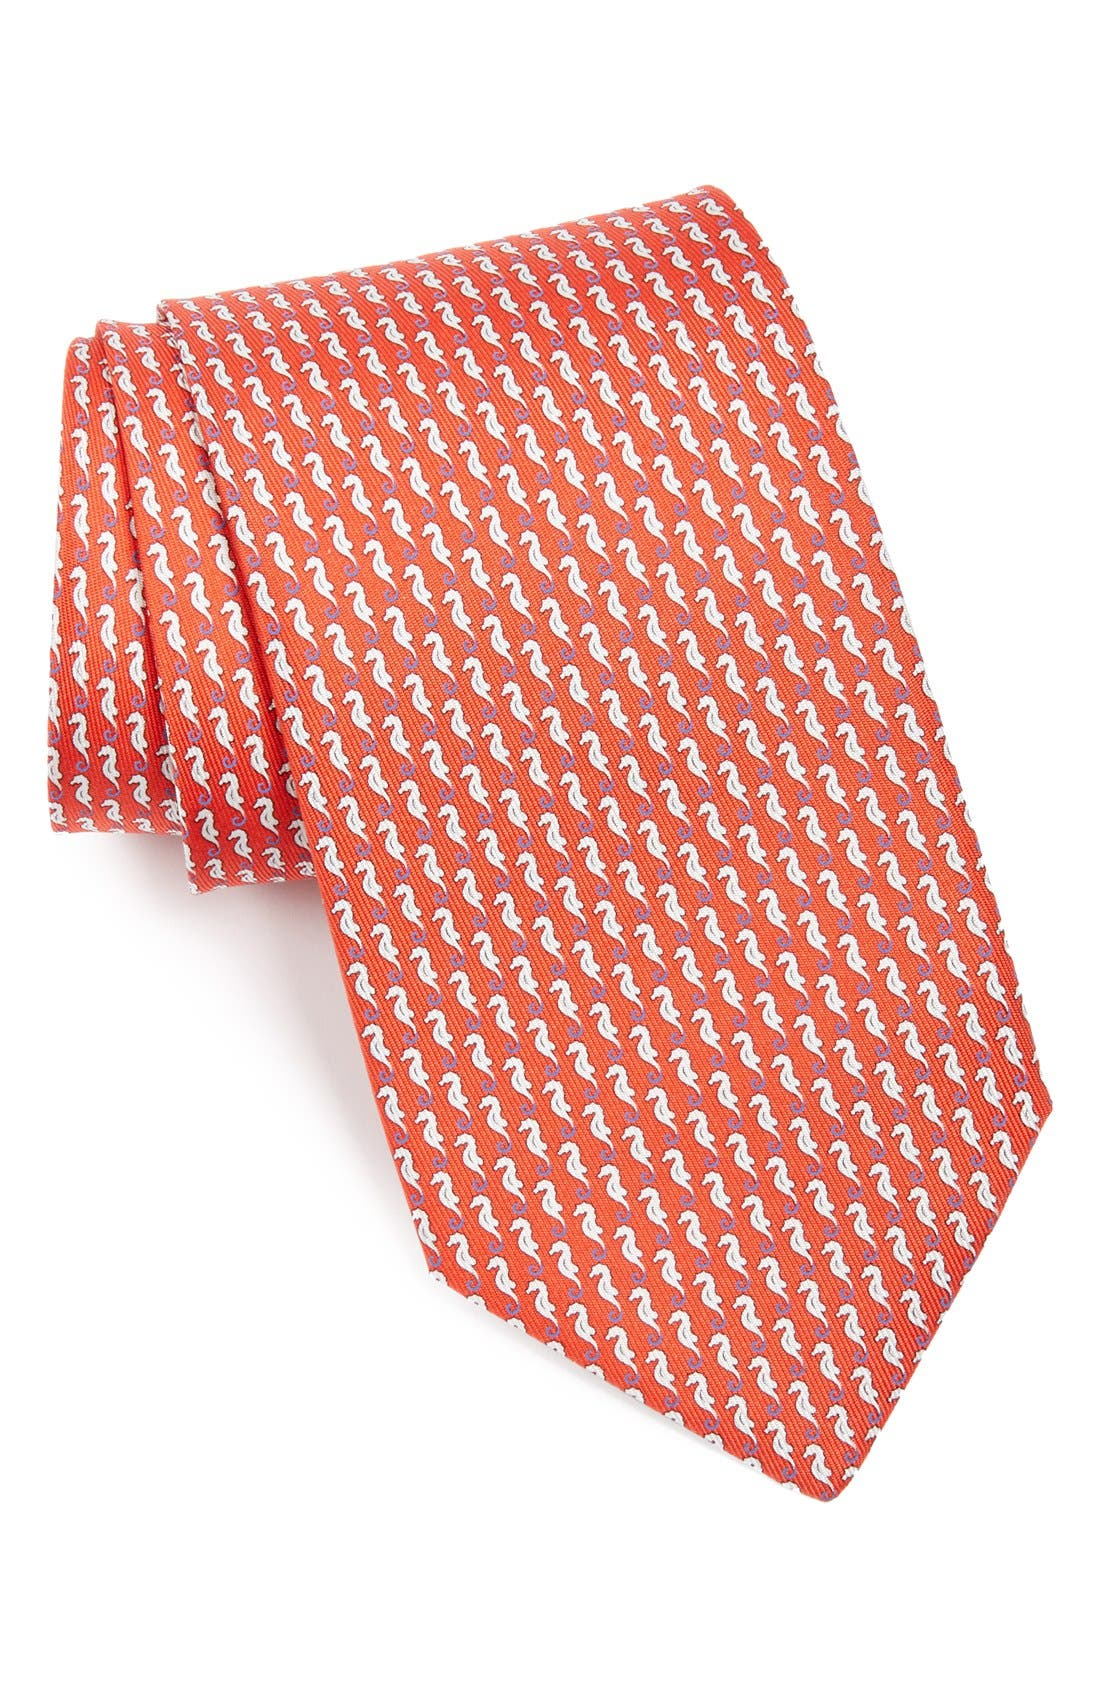 Alternate Image 1 Selected - Salvatore Ferragamo Seahorse Print Tie